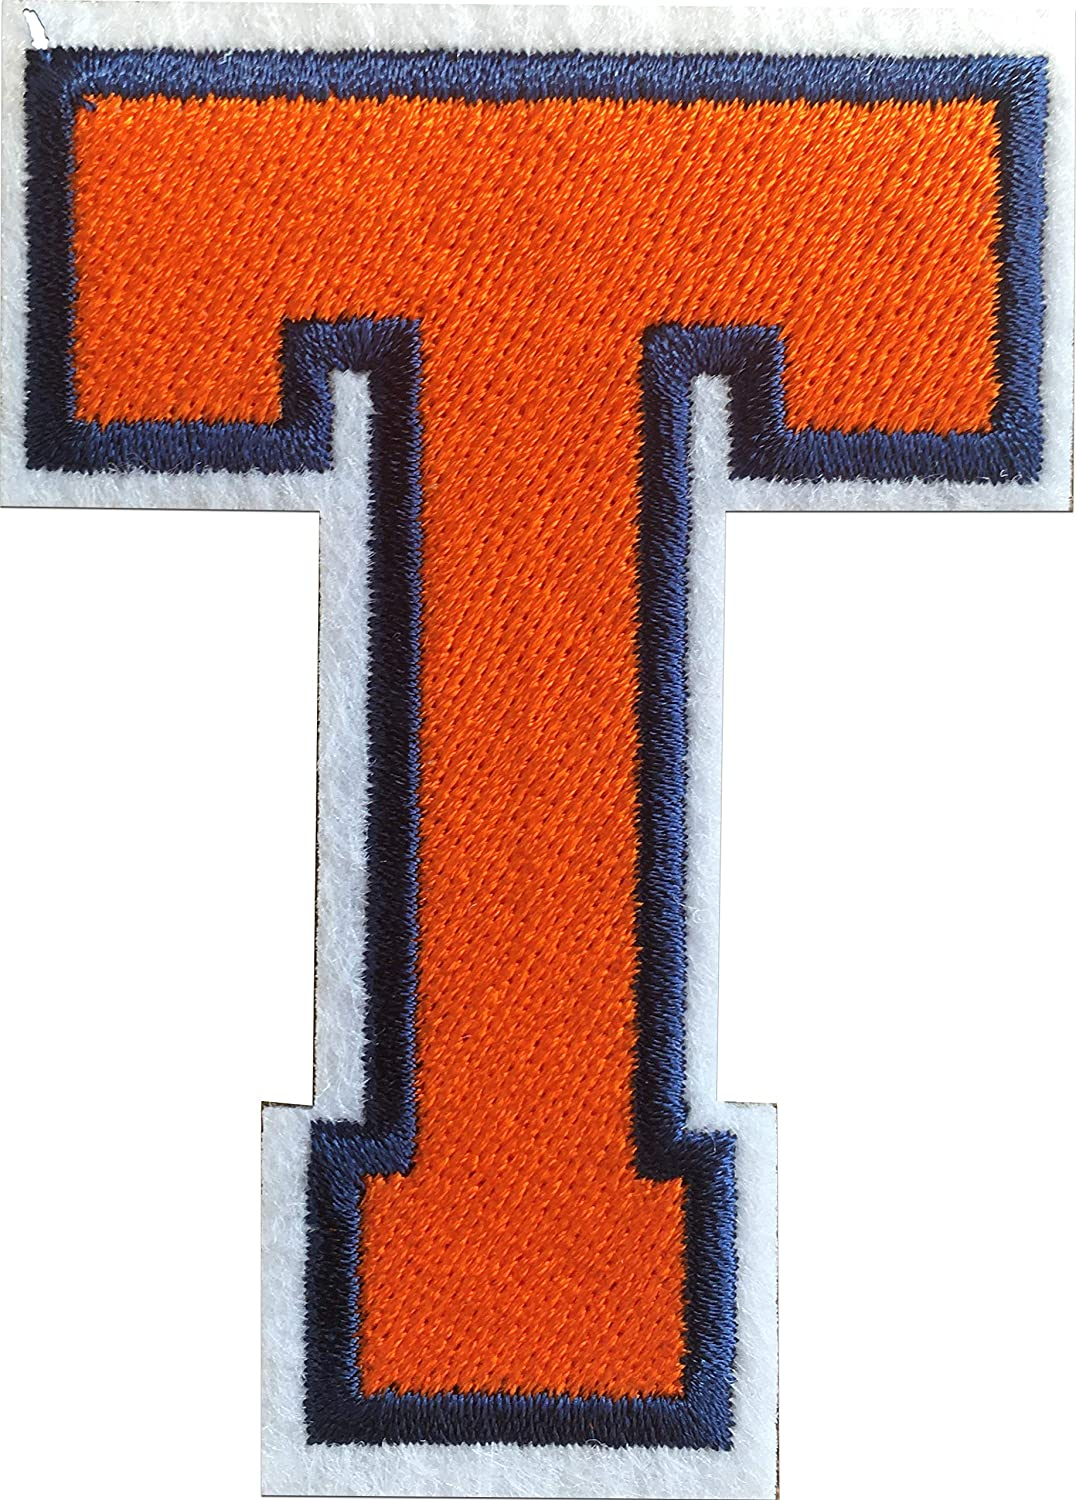 Letter T Iron on Patches Sew on Appliques 3.26 x 2.16 inches (Orange, T)